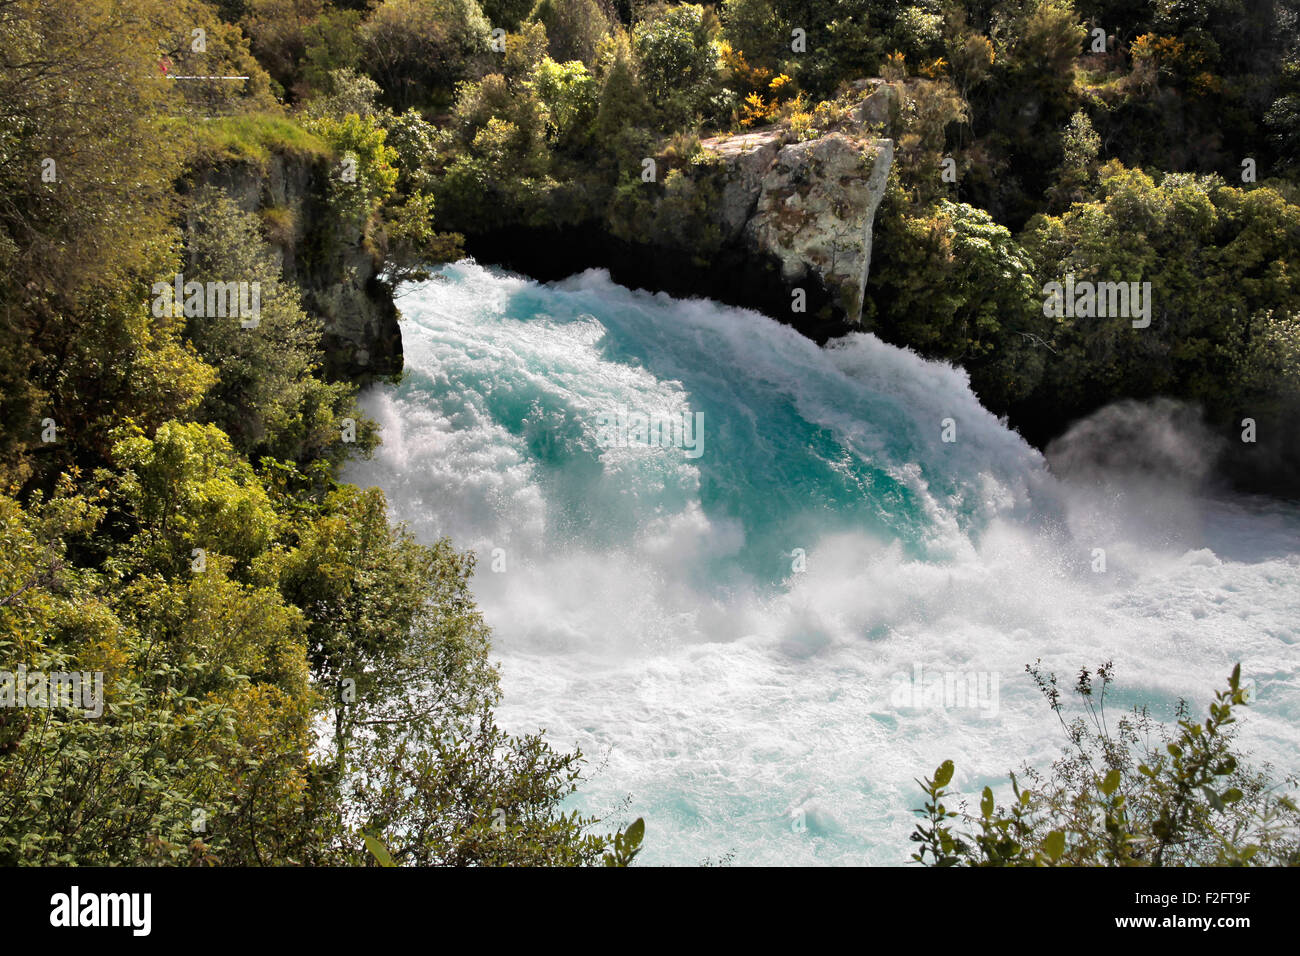 Huka Falls near Taupo, North Island, New Zealand - Stock Image